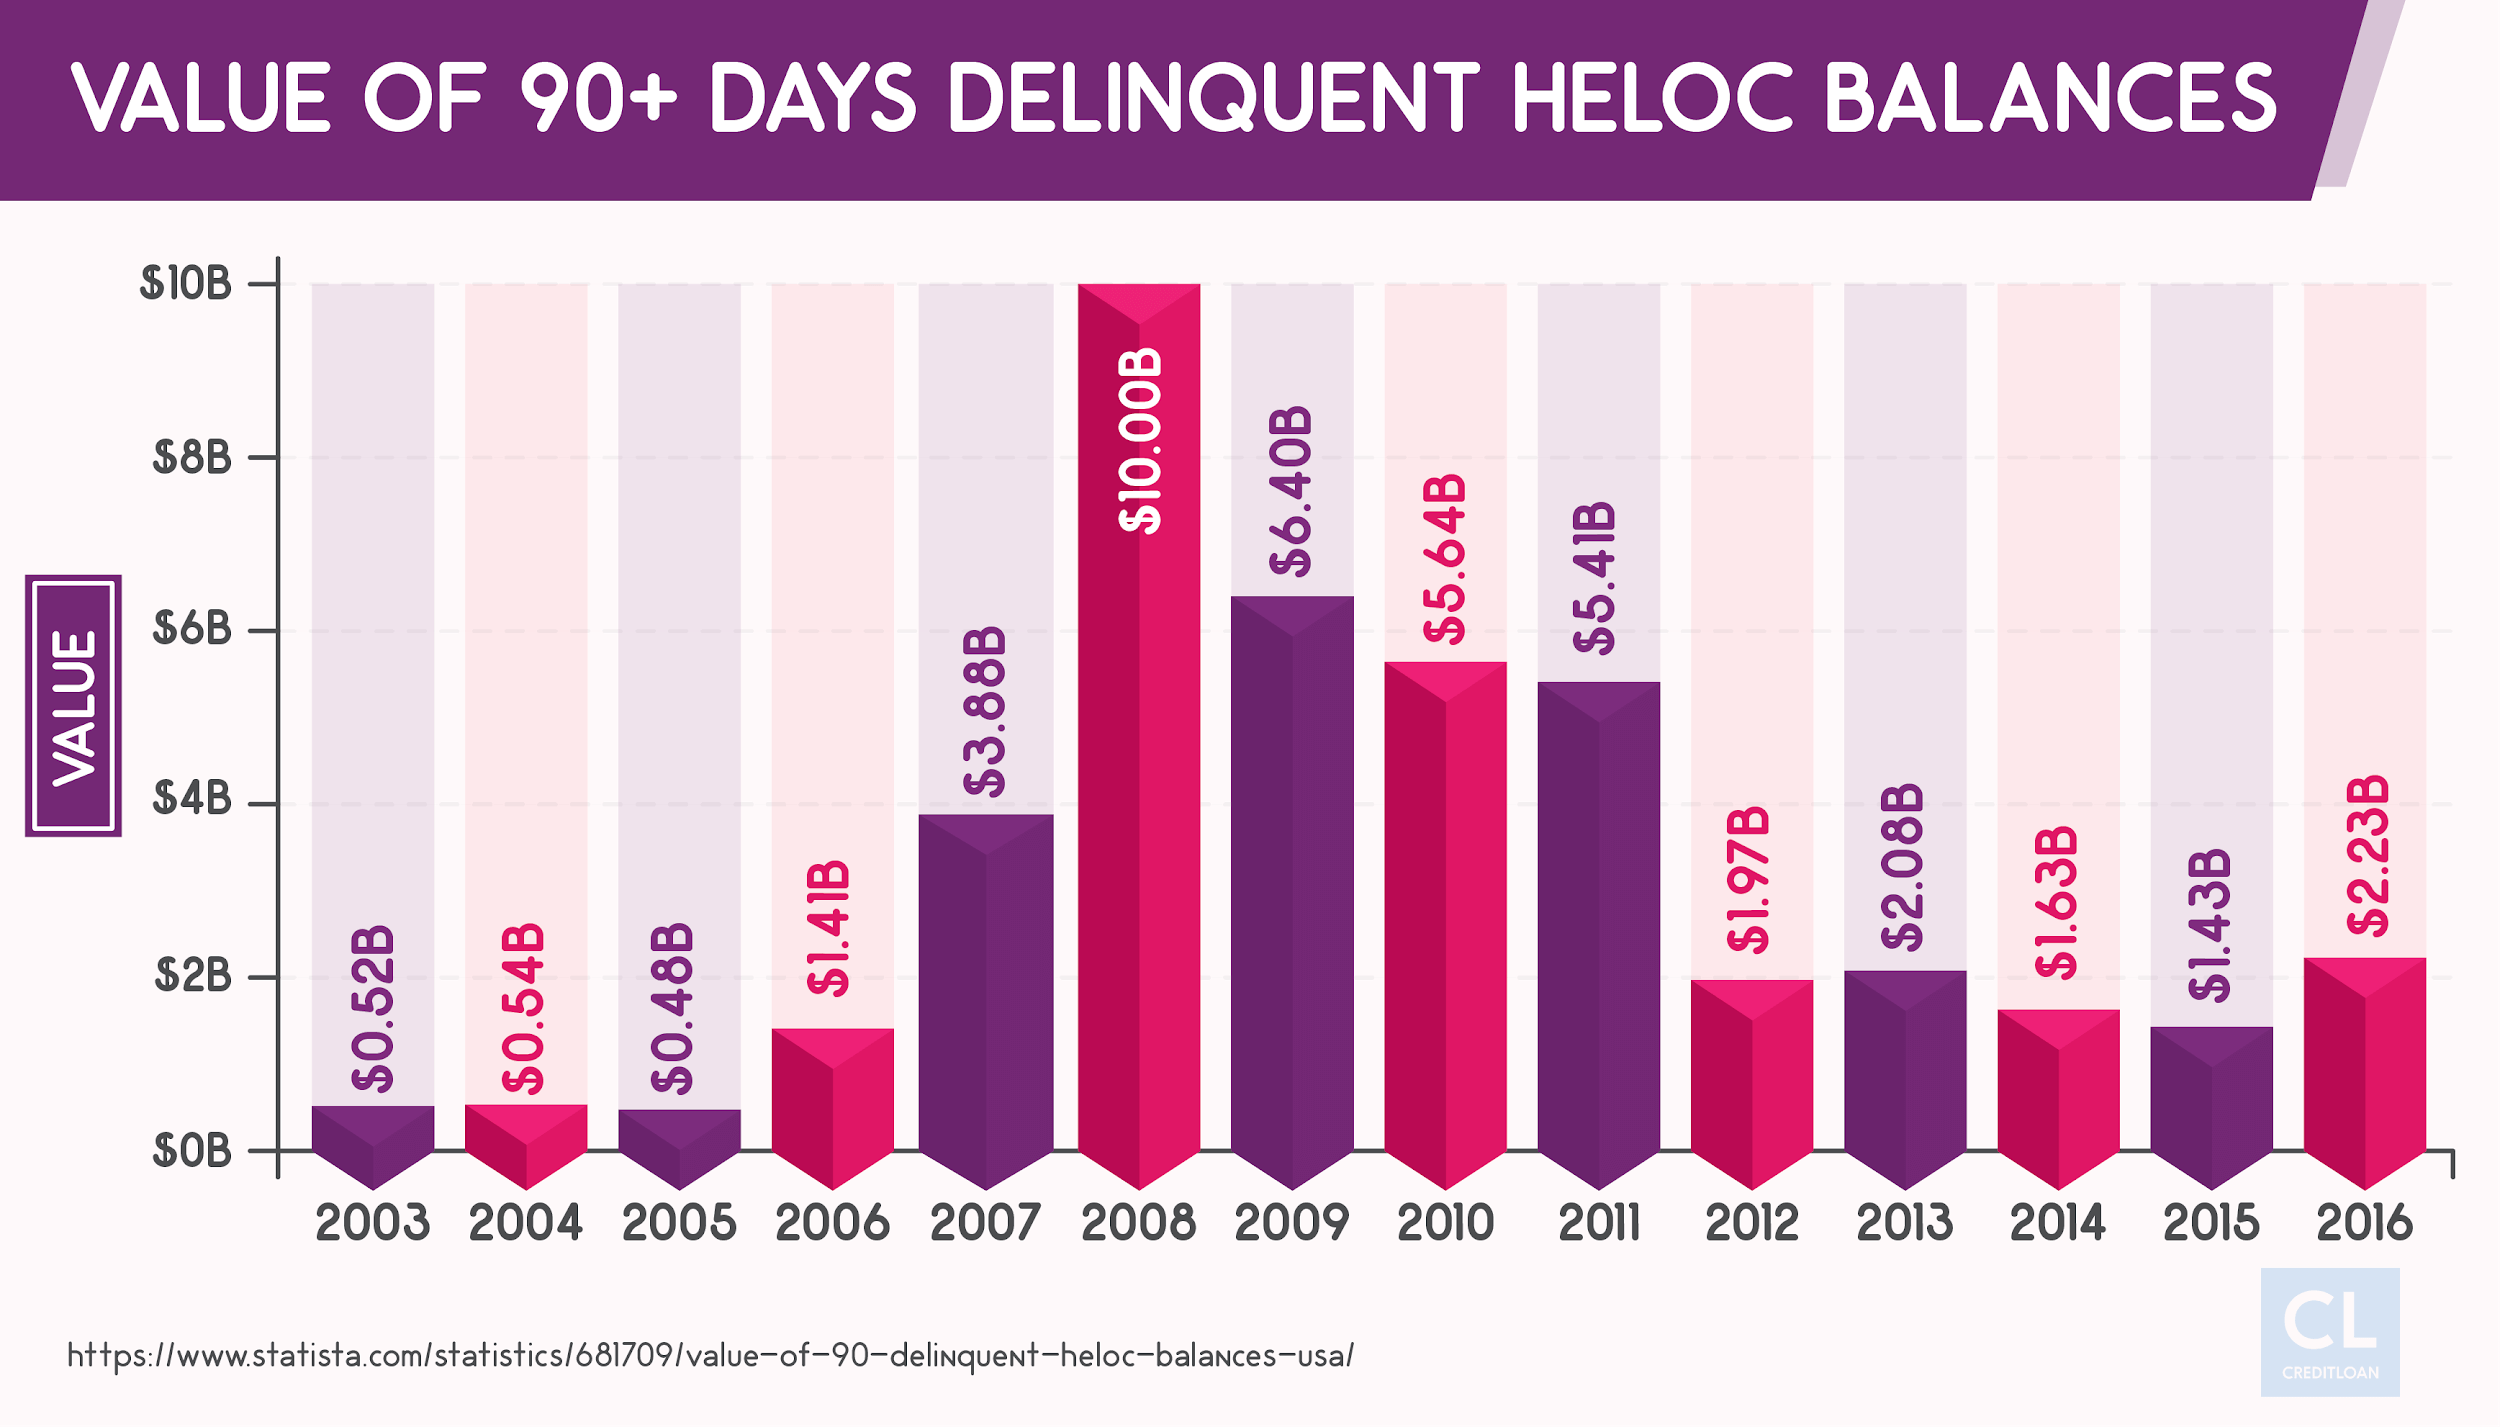 Value of 90+ Days Delinquent HELOC Balances from 2003-2016